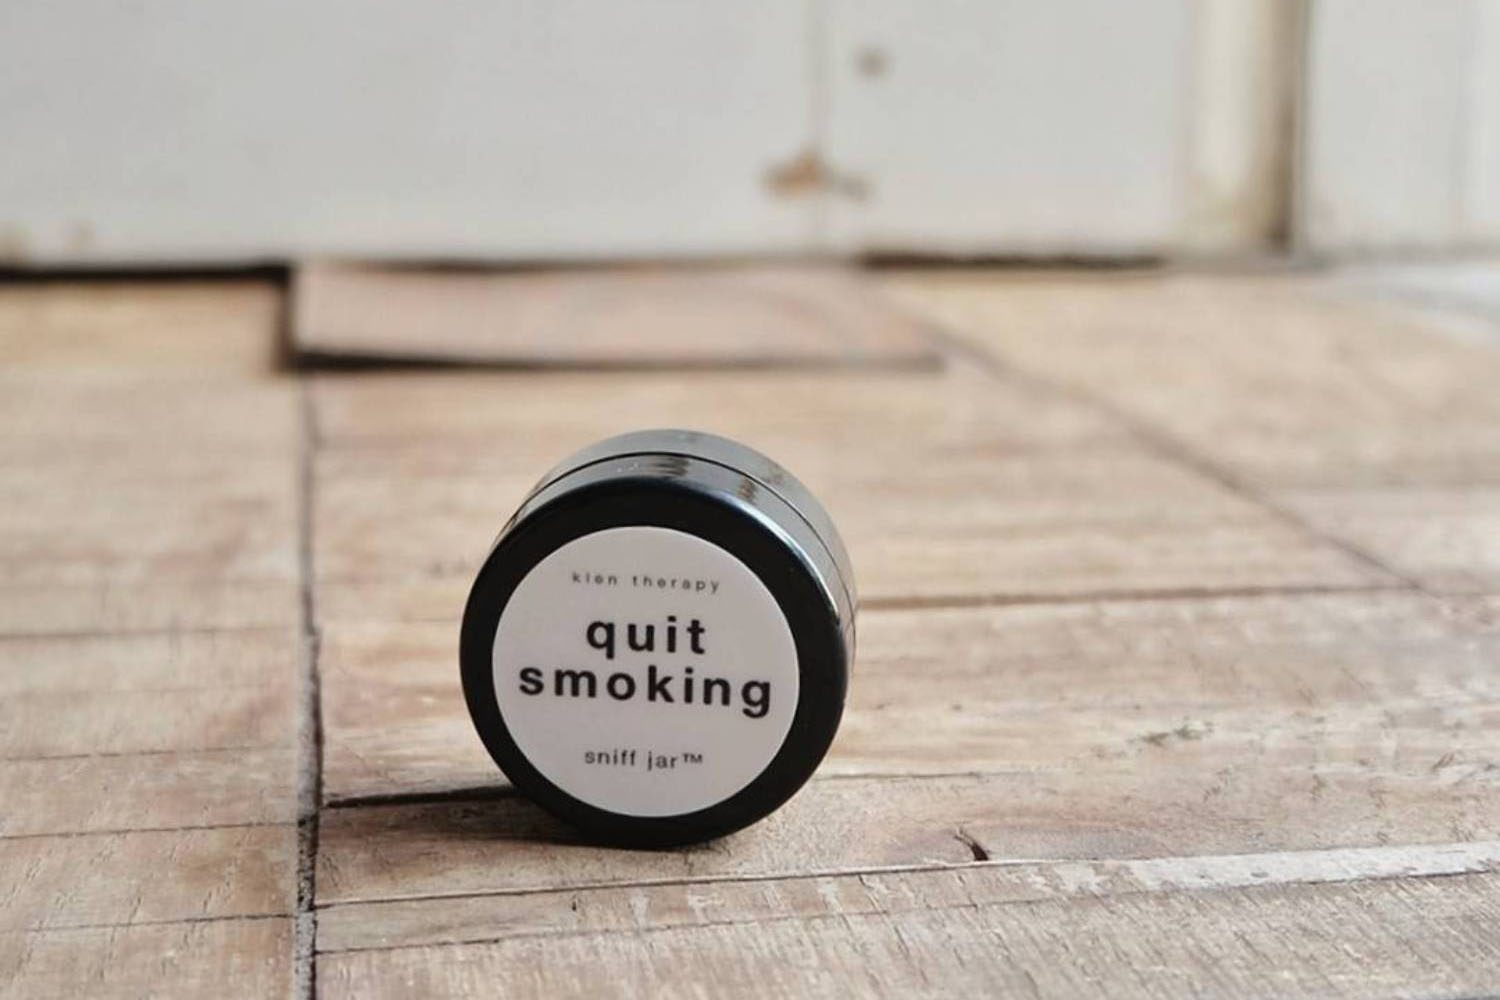 KLEN AND KIND SNIFF JAR – Quit Smoking